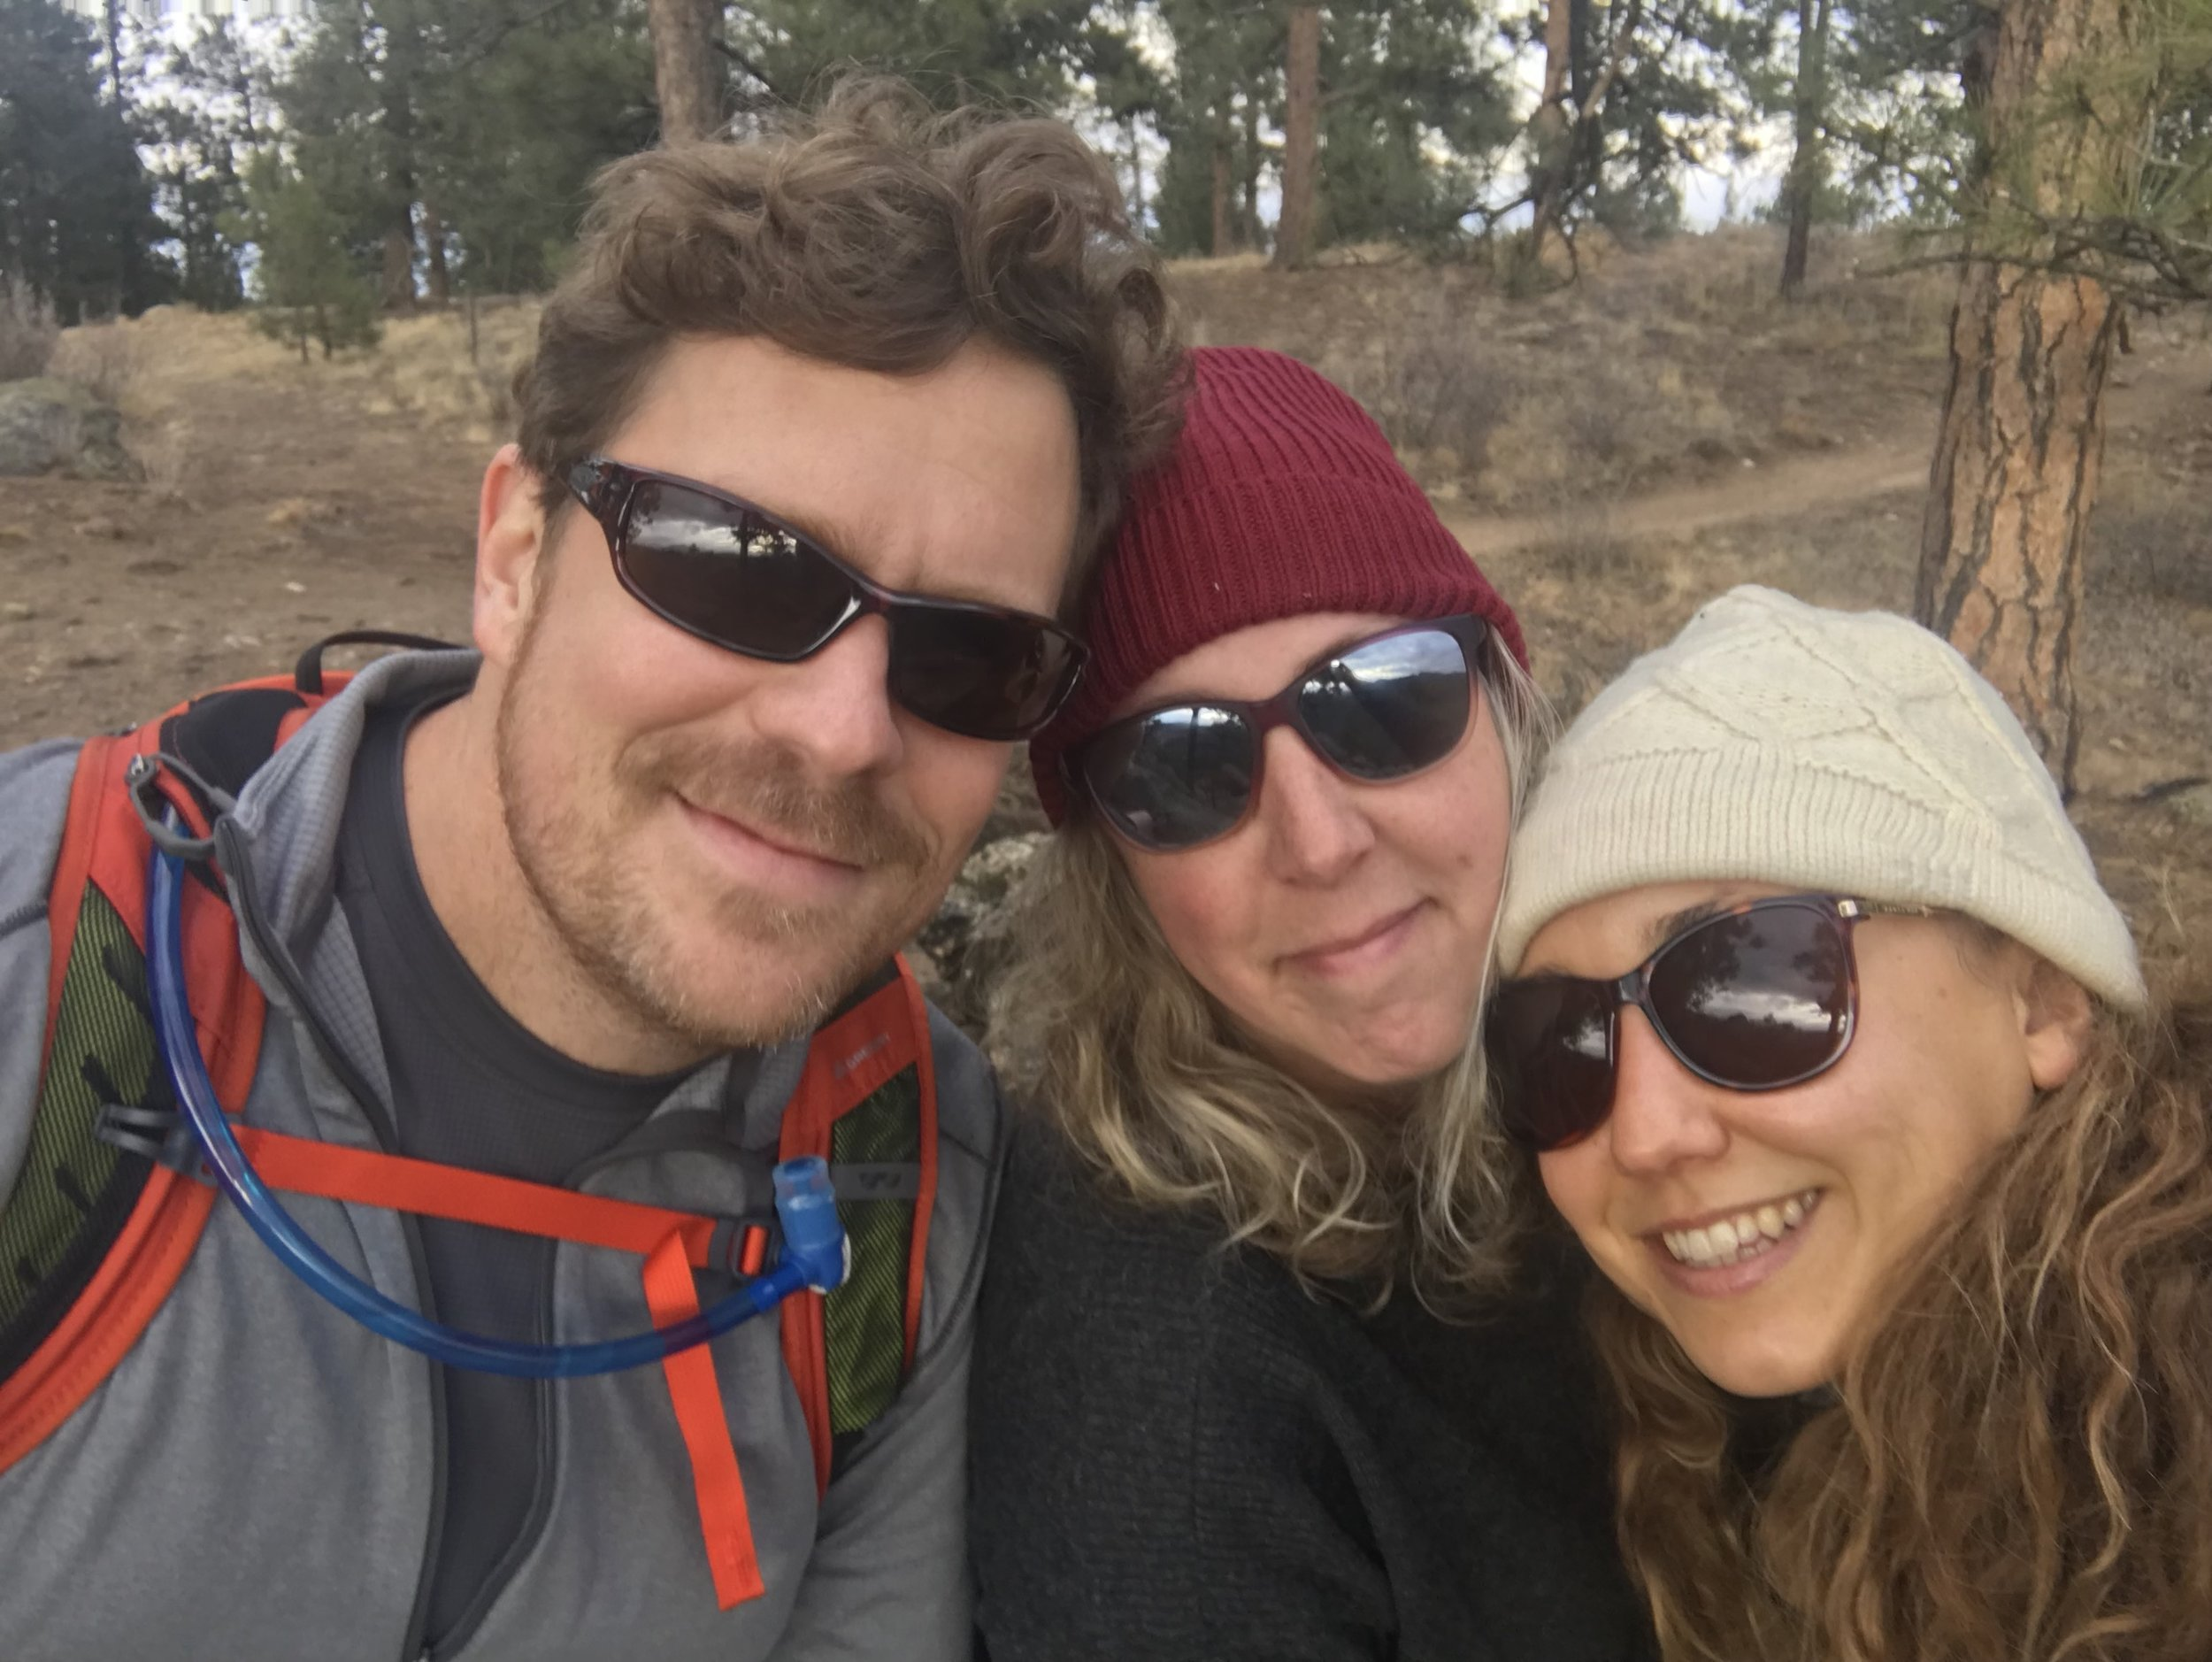 Taylor, Sara, and Betsy on a hike in Colorado post two back to back buying shows with the  Grassroots Outdoor Alliance  and  Outdoor Retailer . We believe in making time to get outdoors together as a team and do what we love, product test new gear, and most of all enjoy time together.